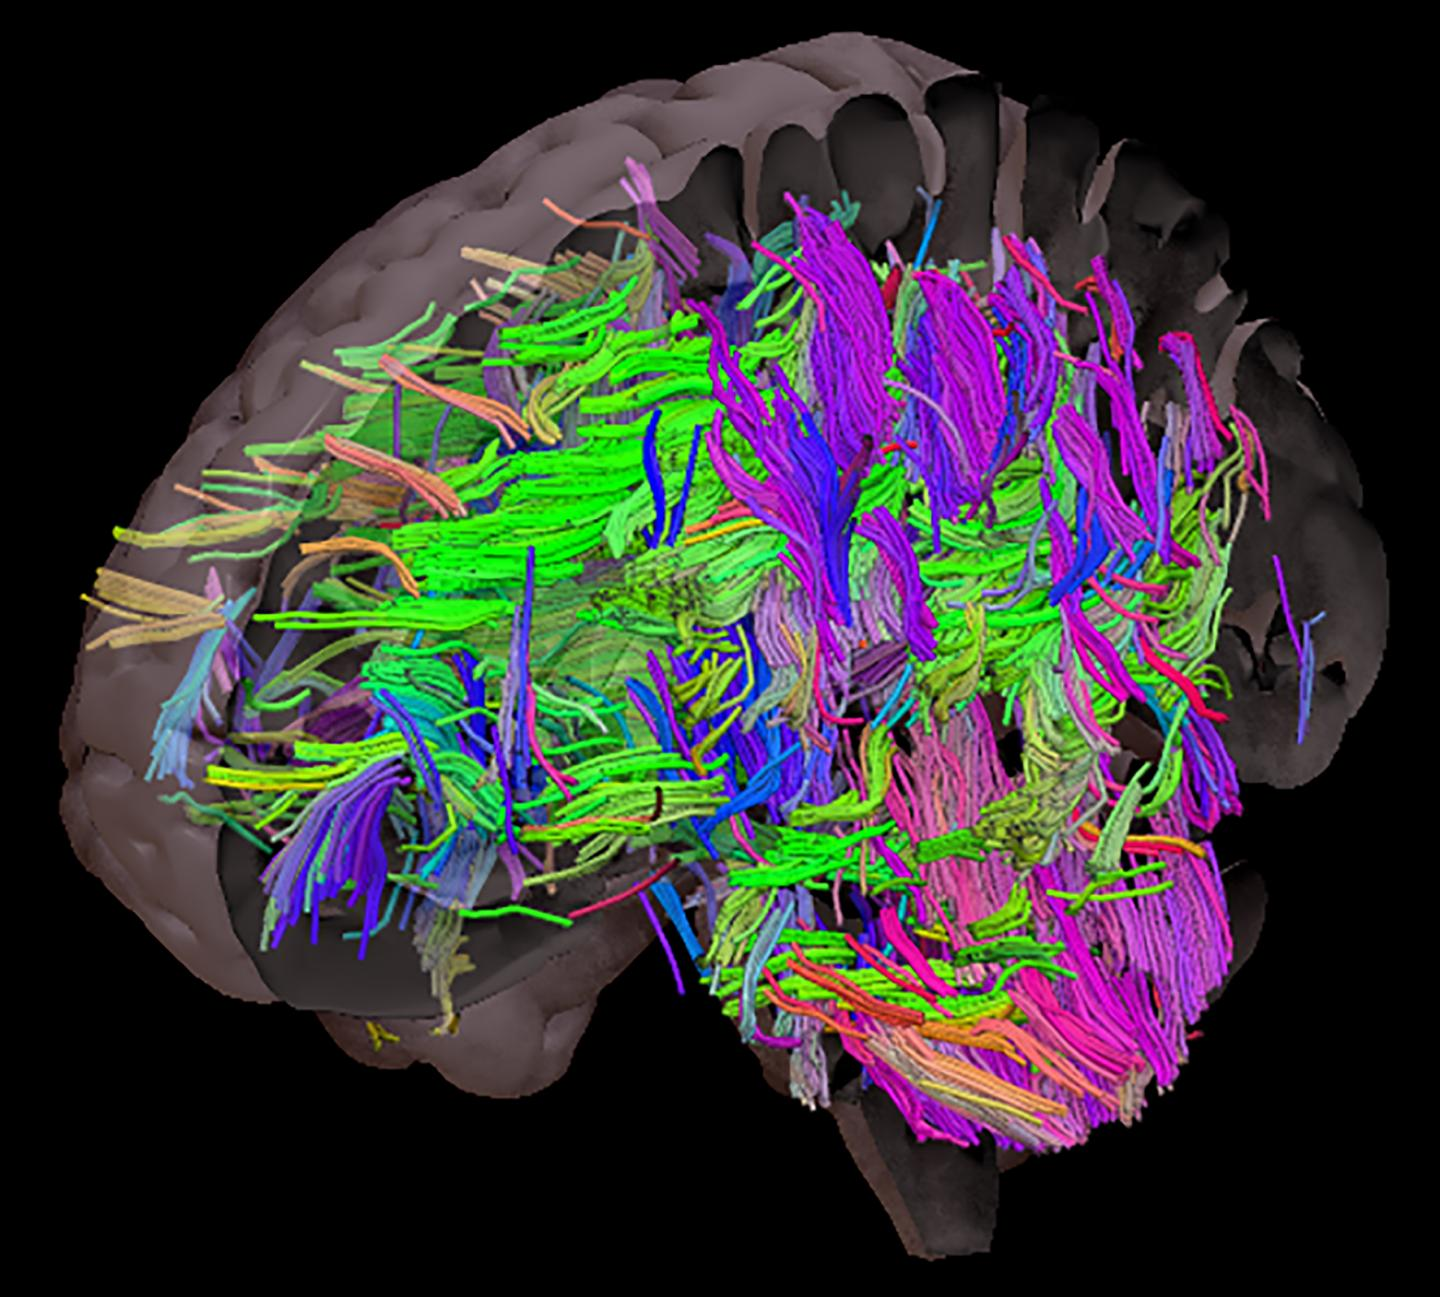 White matter tracts in the brain